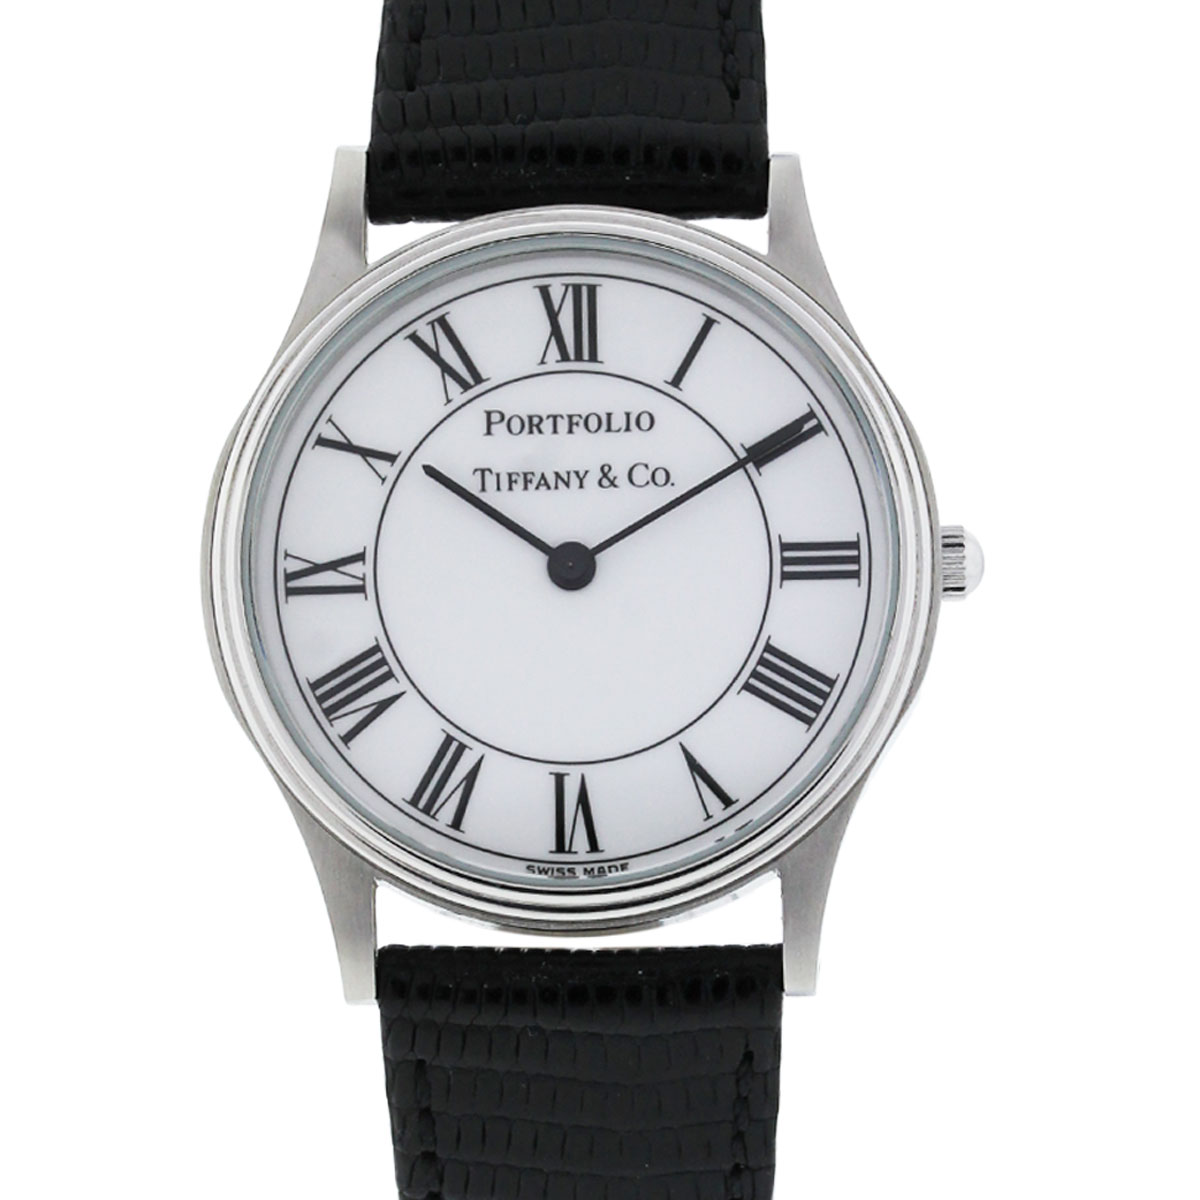 You are viewing this Tiffany & Co. Portfolio White Roman Dial Mens Watch!